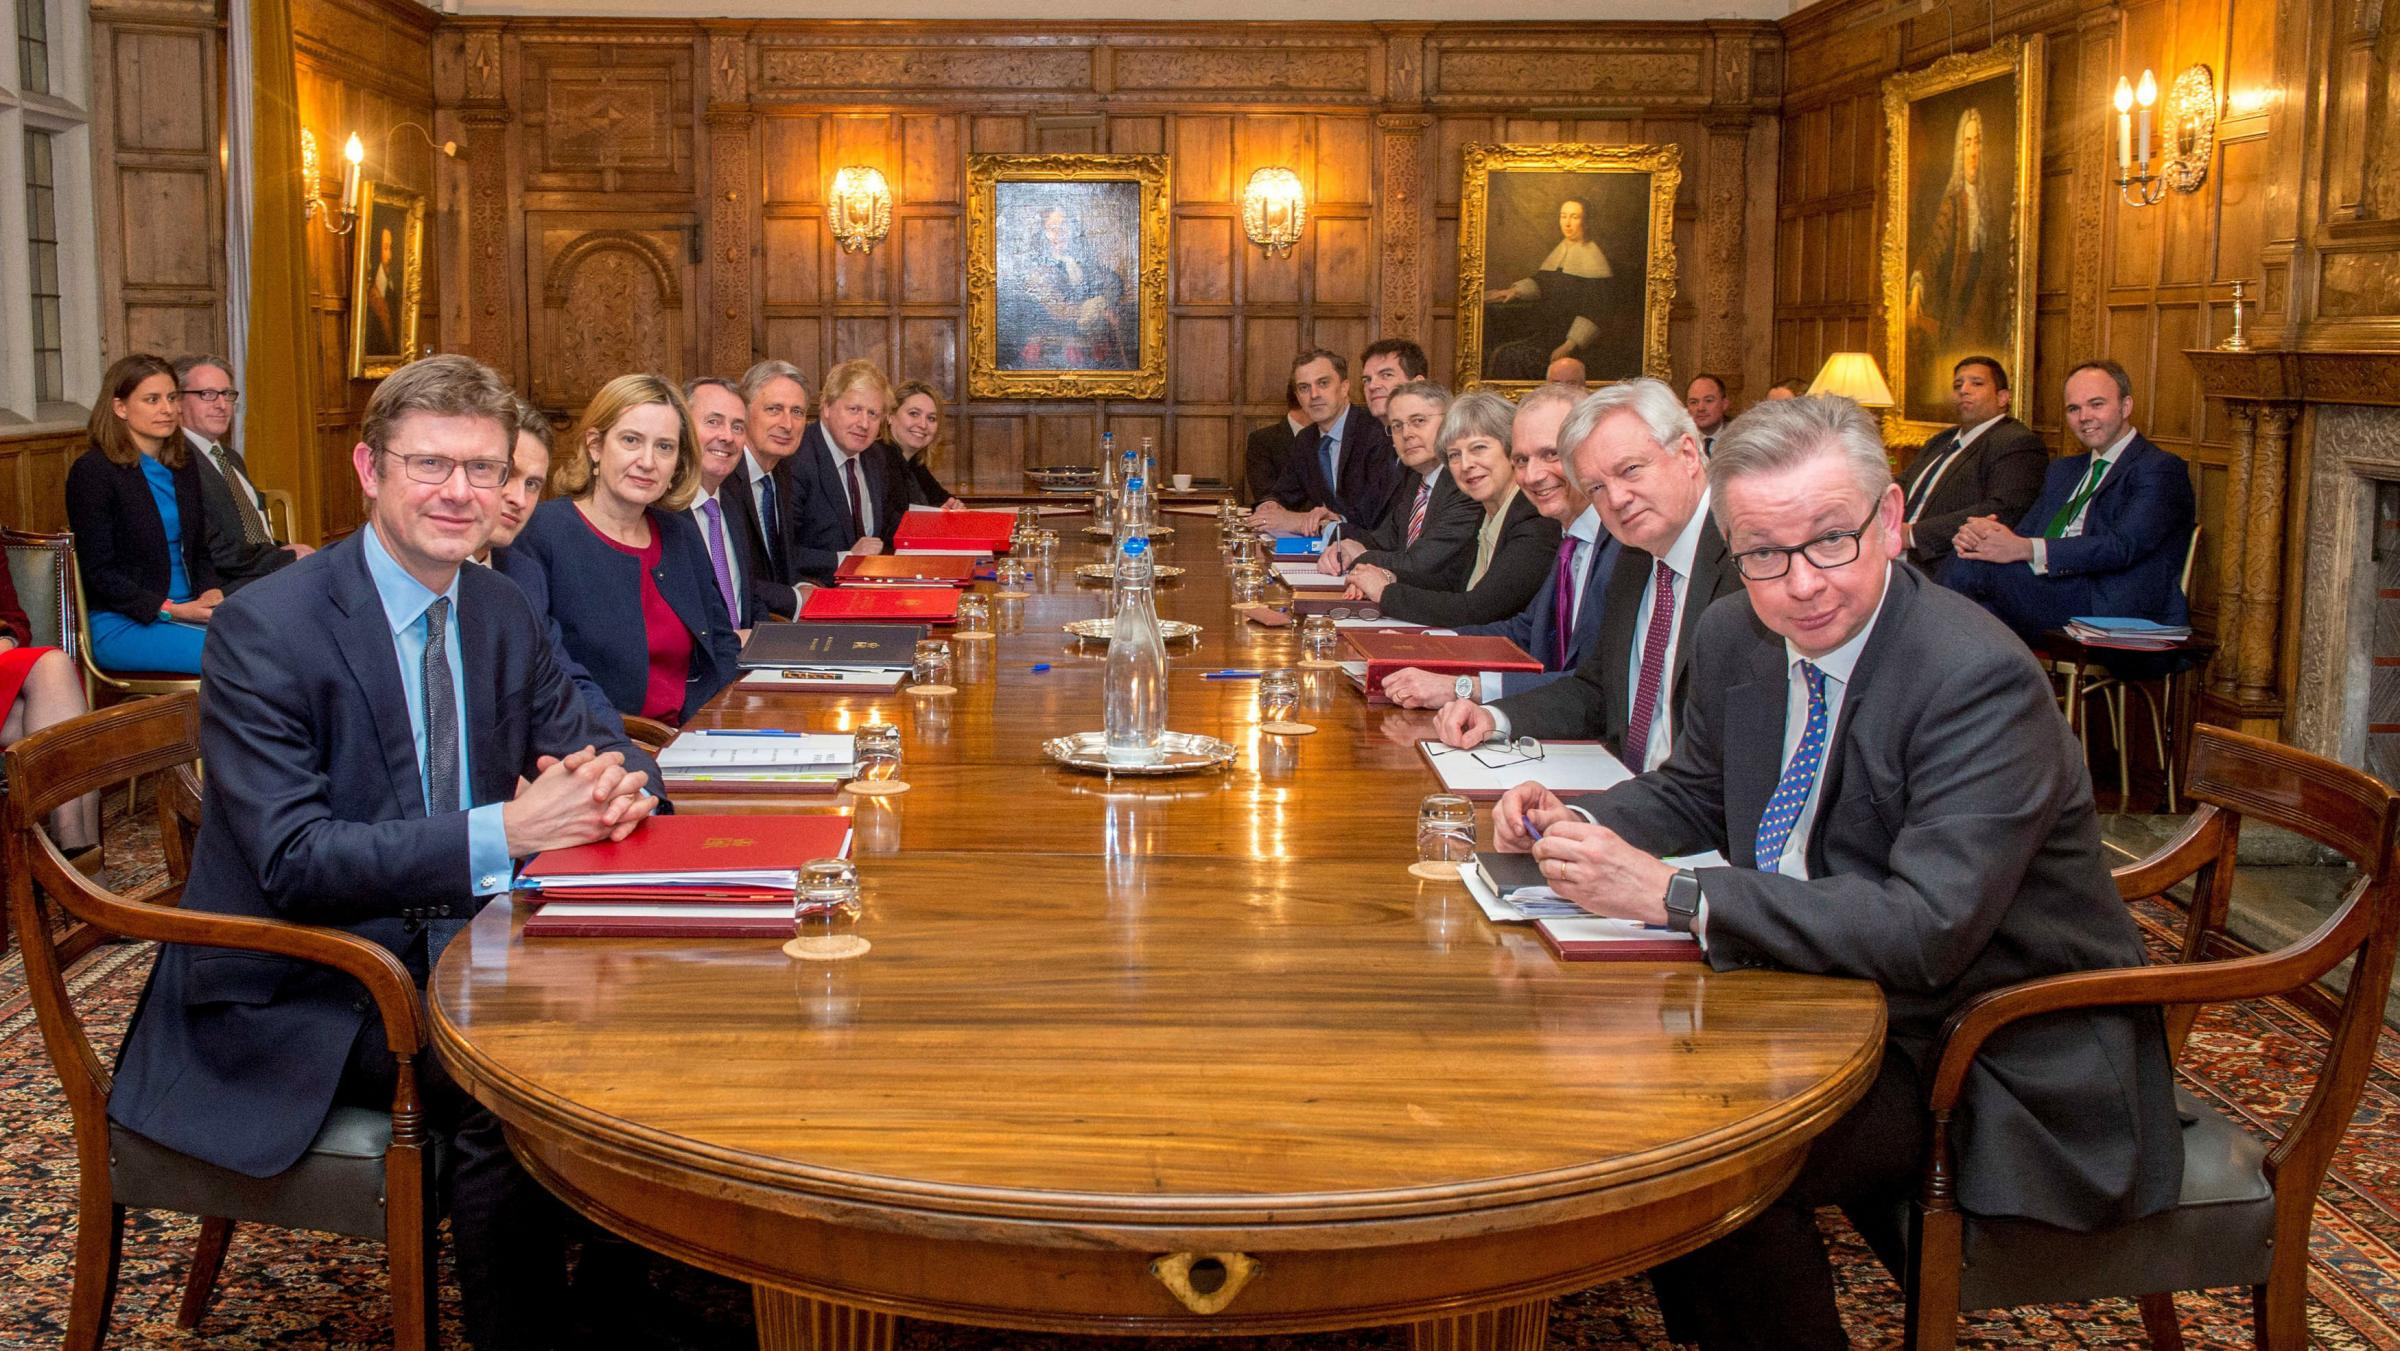 The Scottish Secretary was missing from the meeting